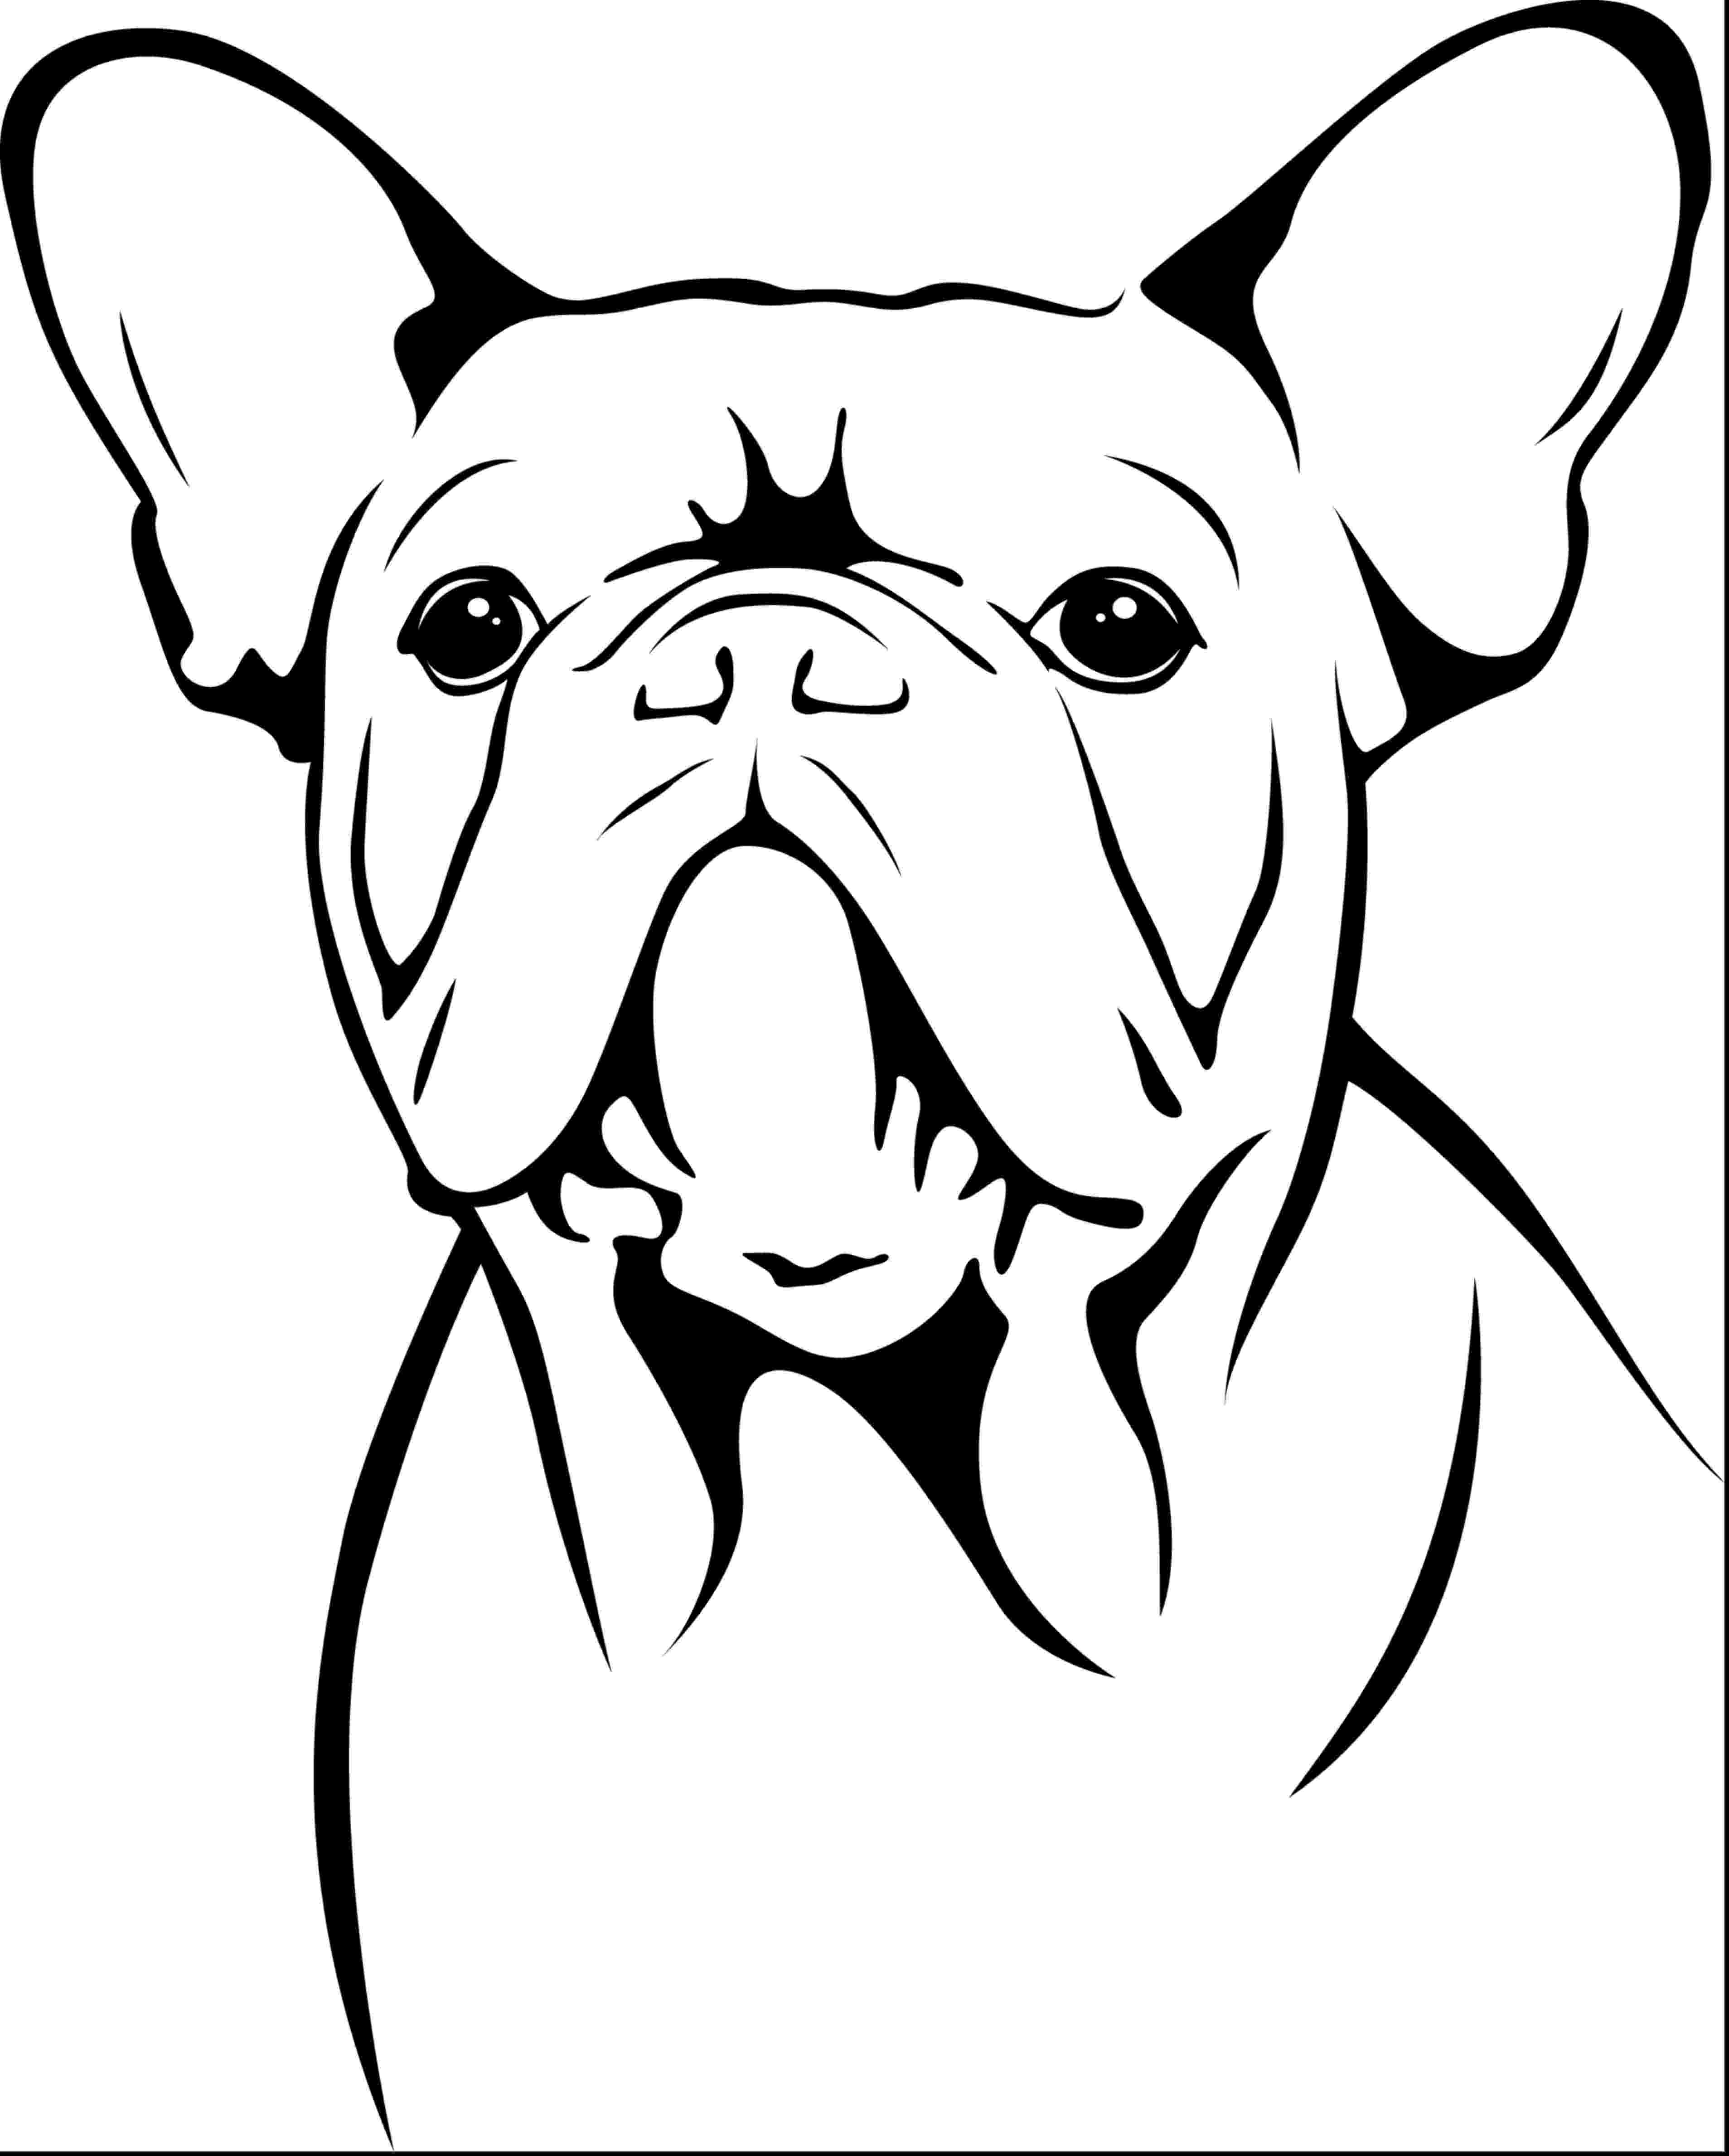 bulldogs coloring pages bulldog coloring pages to download and print for free coloring bulldogs pages